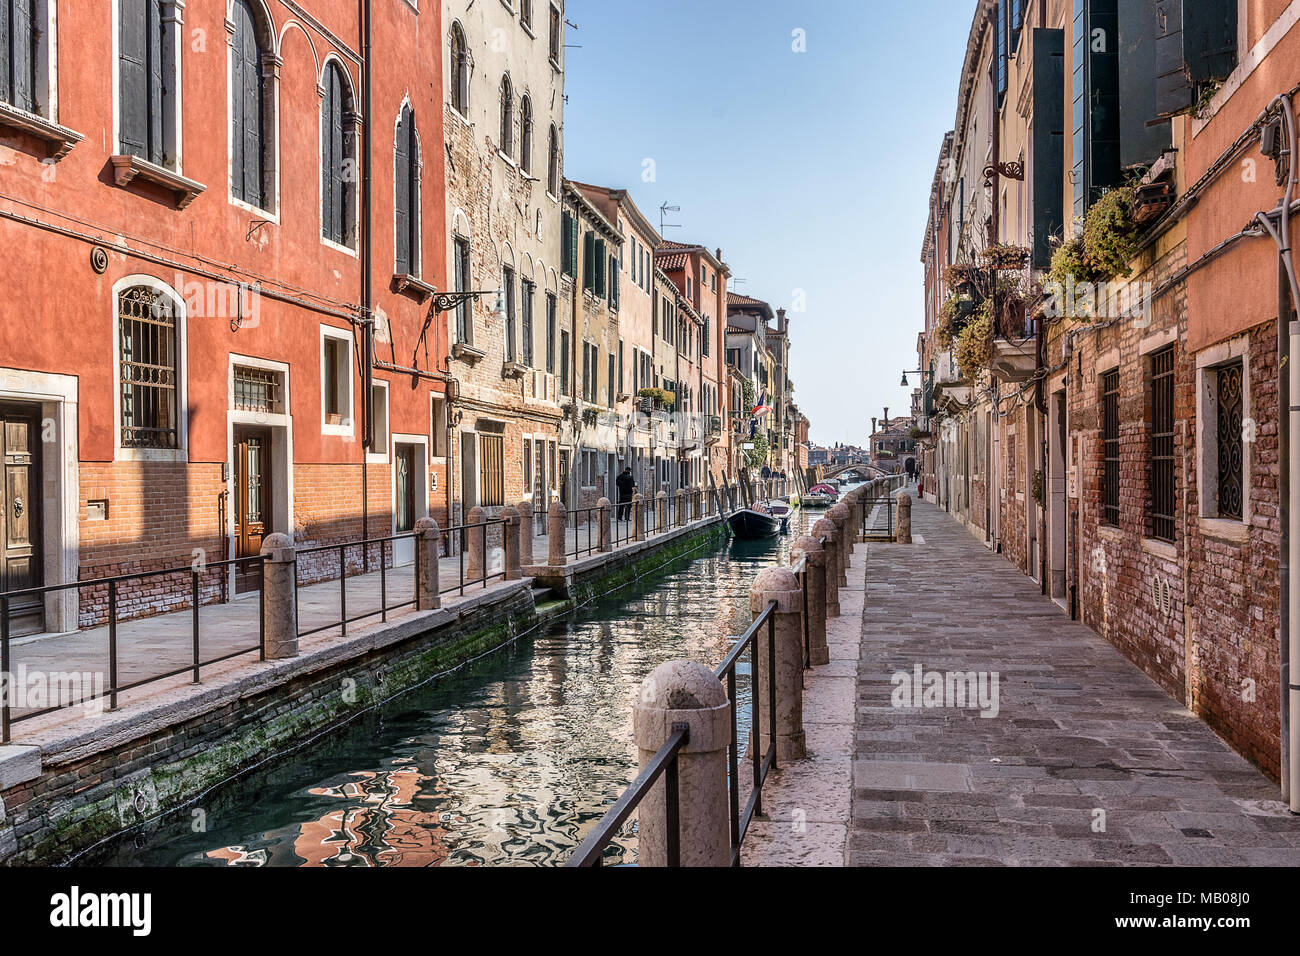 Colorful canals in Dorsoduro in Venice Italy - Stock Image